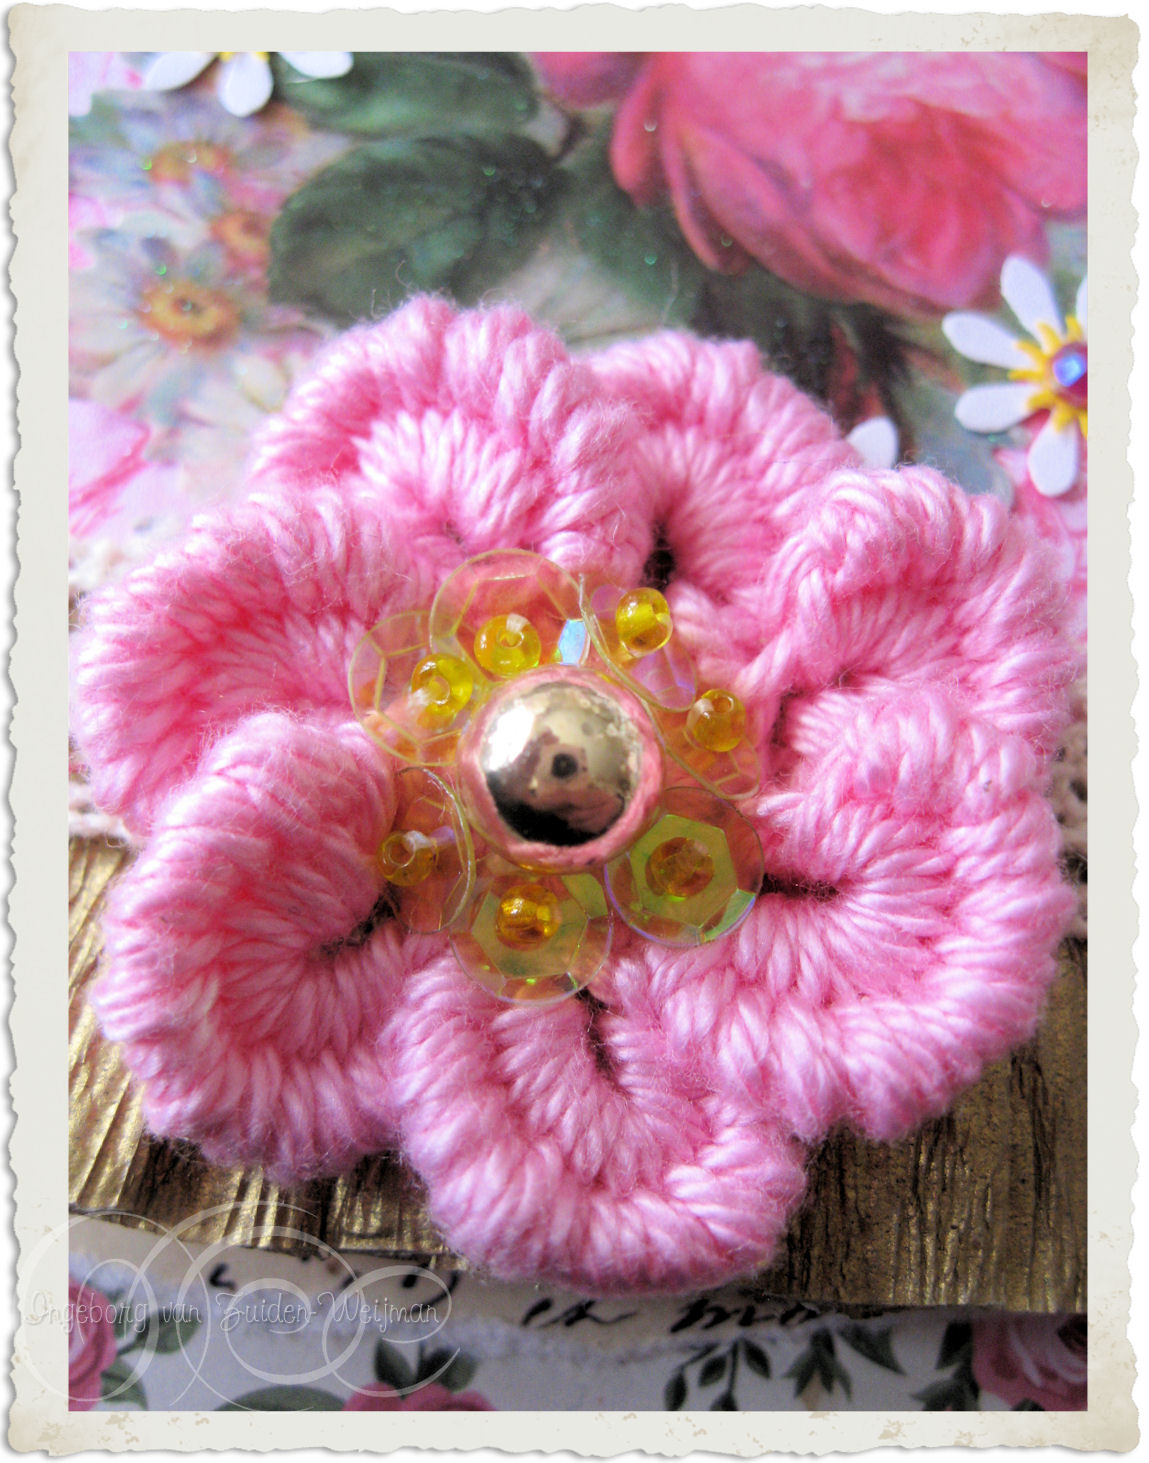 Pink crochet bullion flower by Ingeborg van Zuiden